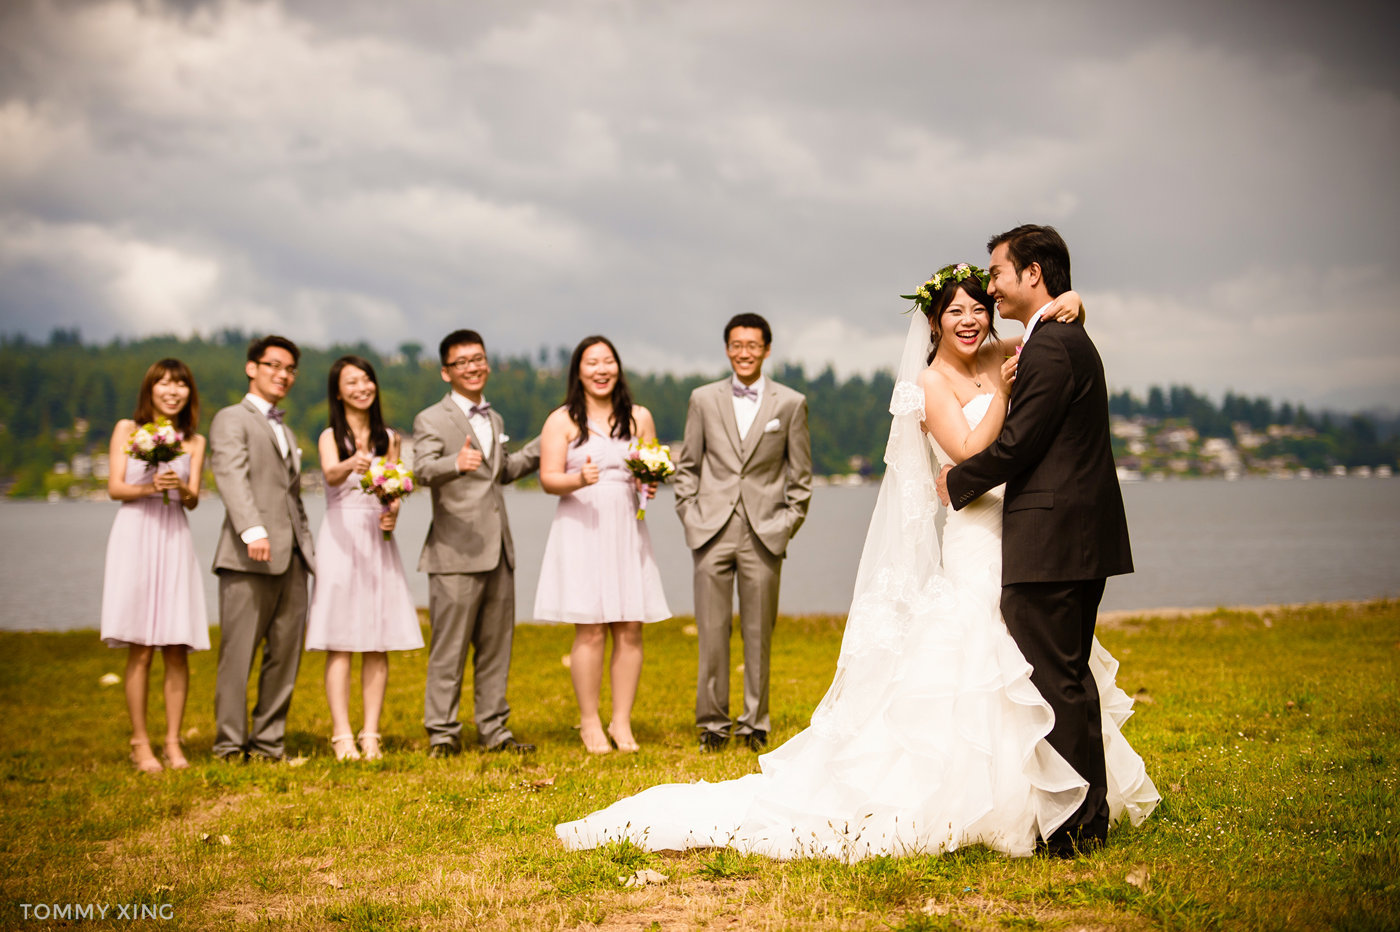 Seattle Wedding and pre wedding Los Angeles Tommy Xing Photography 西雅图洛杉矶旧金山婚礼婚纱照摄影师 117.jpg